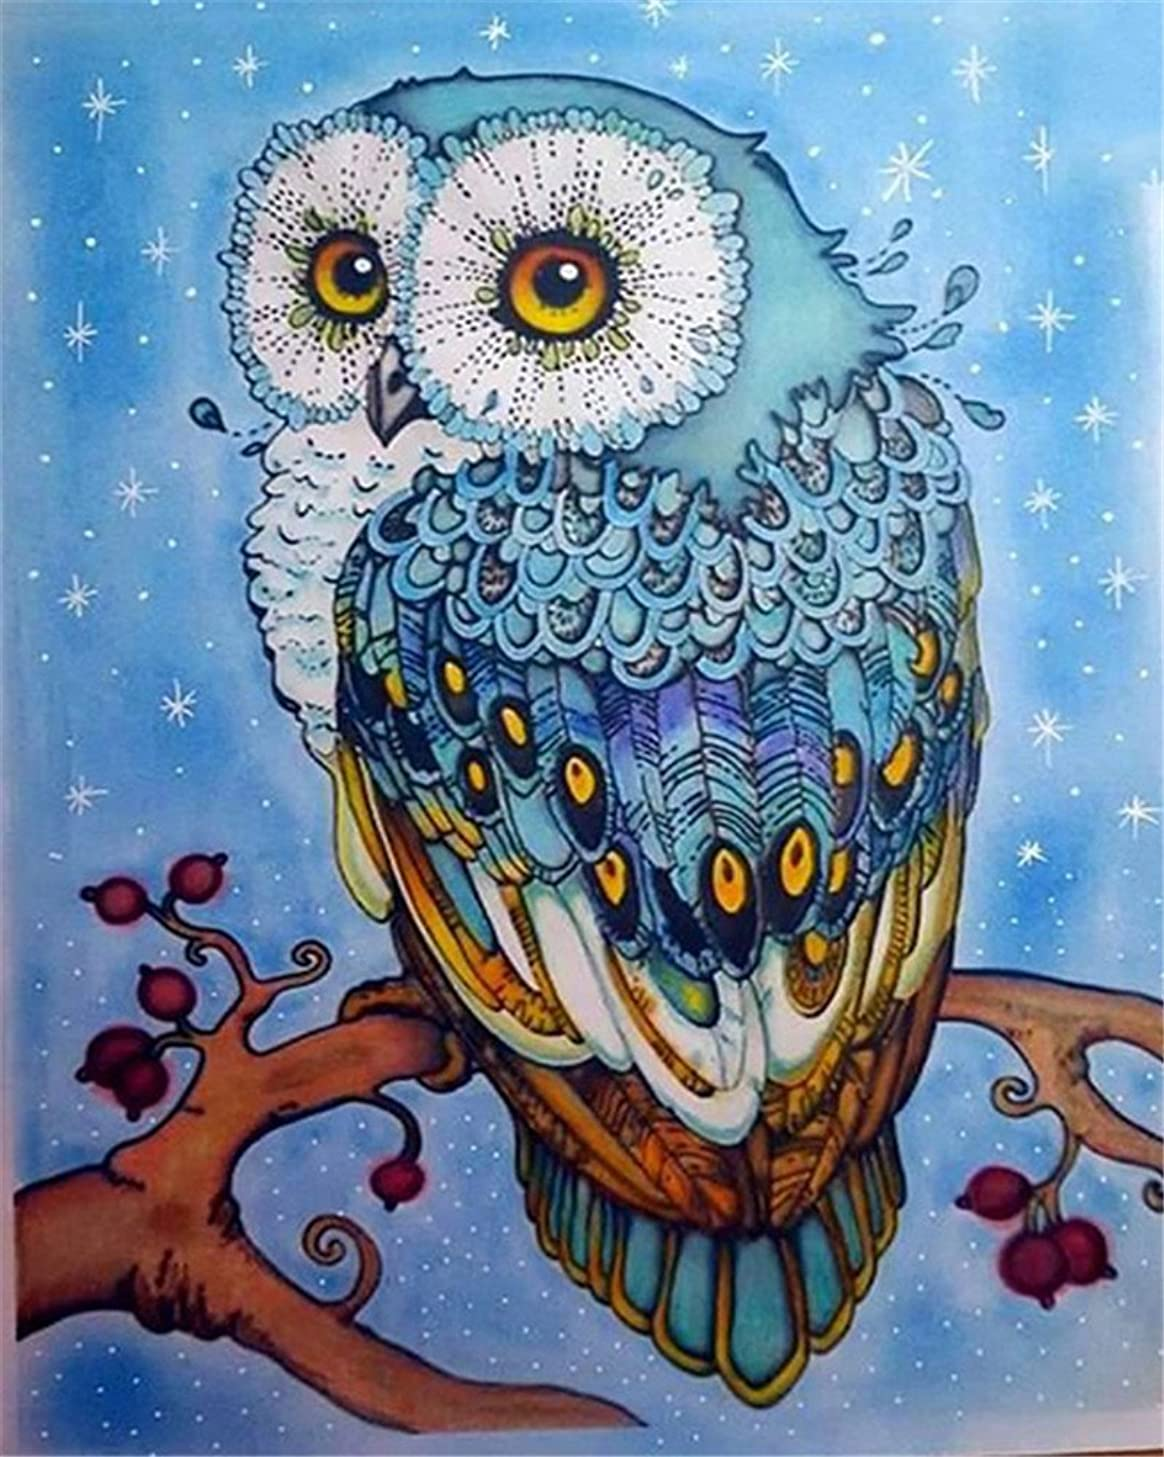 DIY Oil Painting Paint by Number Kit for Kids Adults Beginner 16x20 inch -Cute Owl,Drawing with Brushes Christmas Decor Decorations Gifts (Frame)